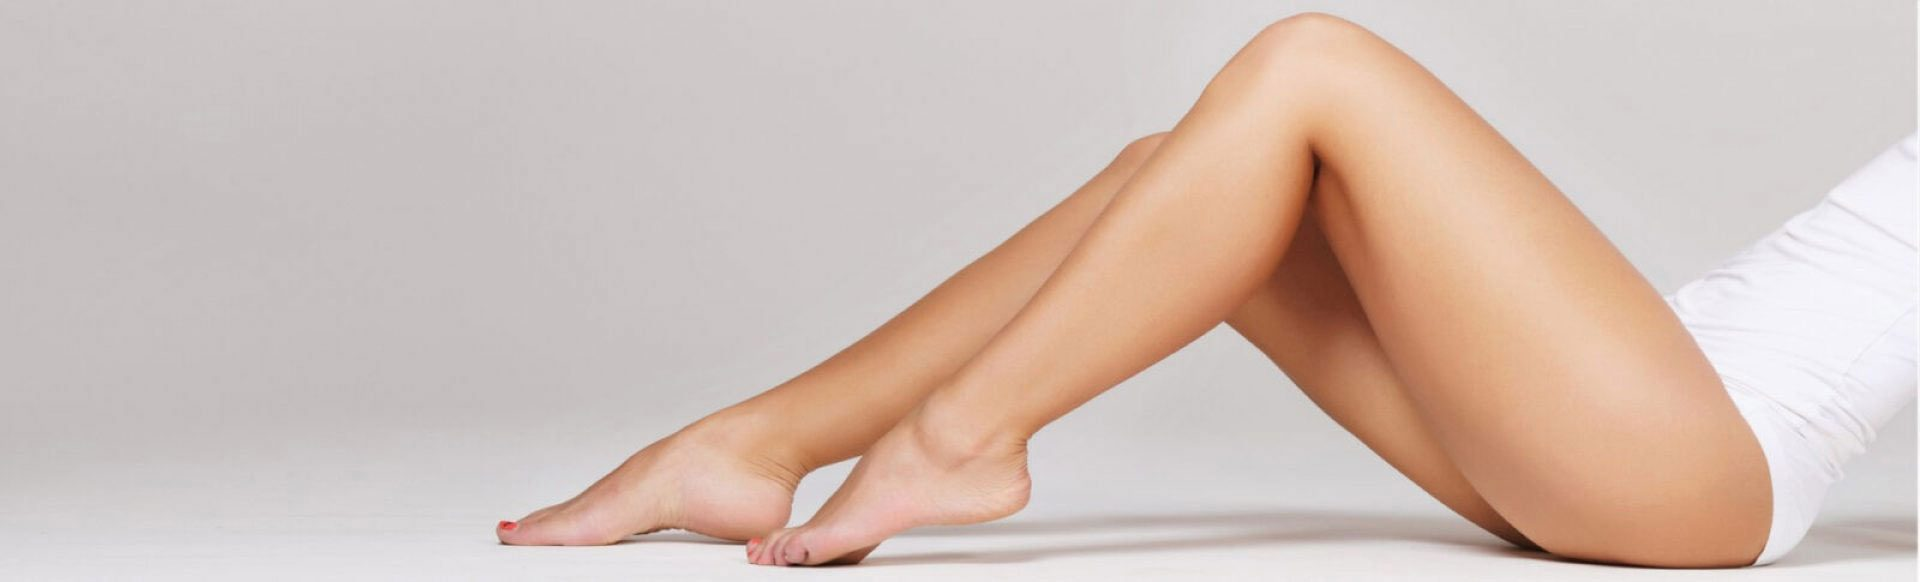 Laser Hair Removal Innovative Aesthetics Medical Spa and Laser Center